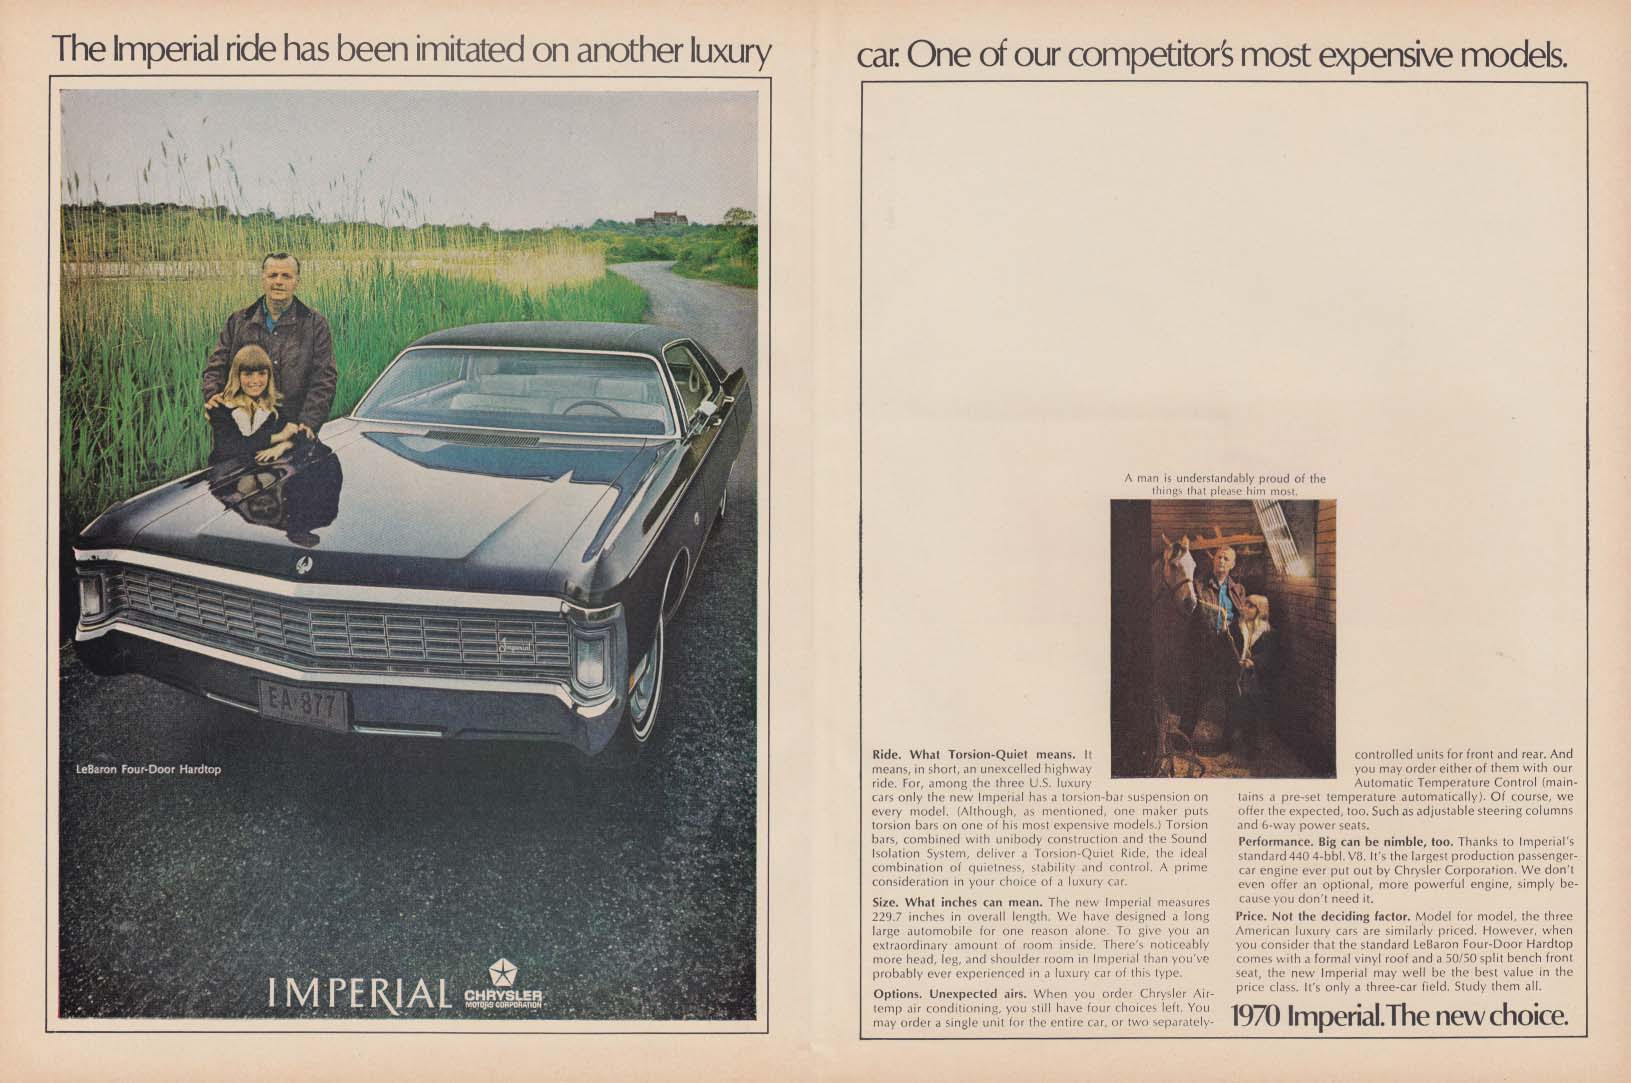 Image for The Imperial ride has been imitated Chrysler ad 1970 Ven